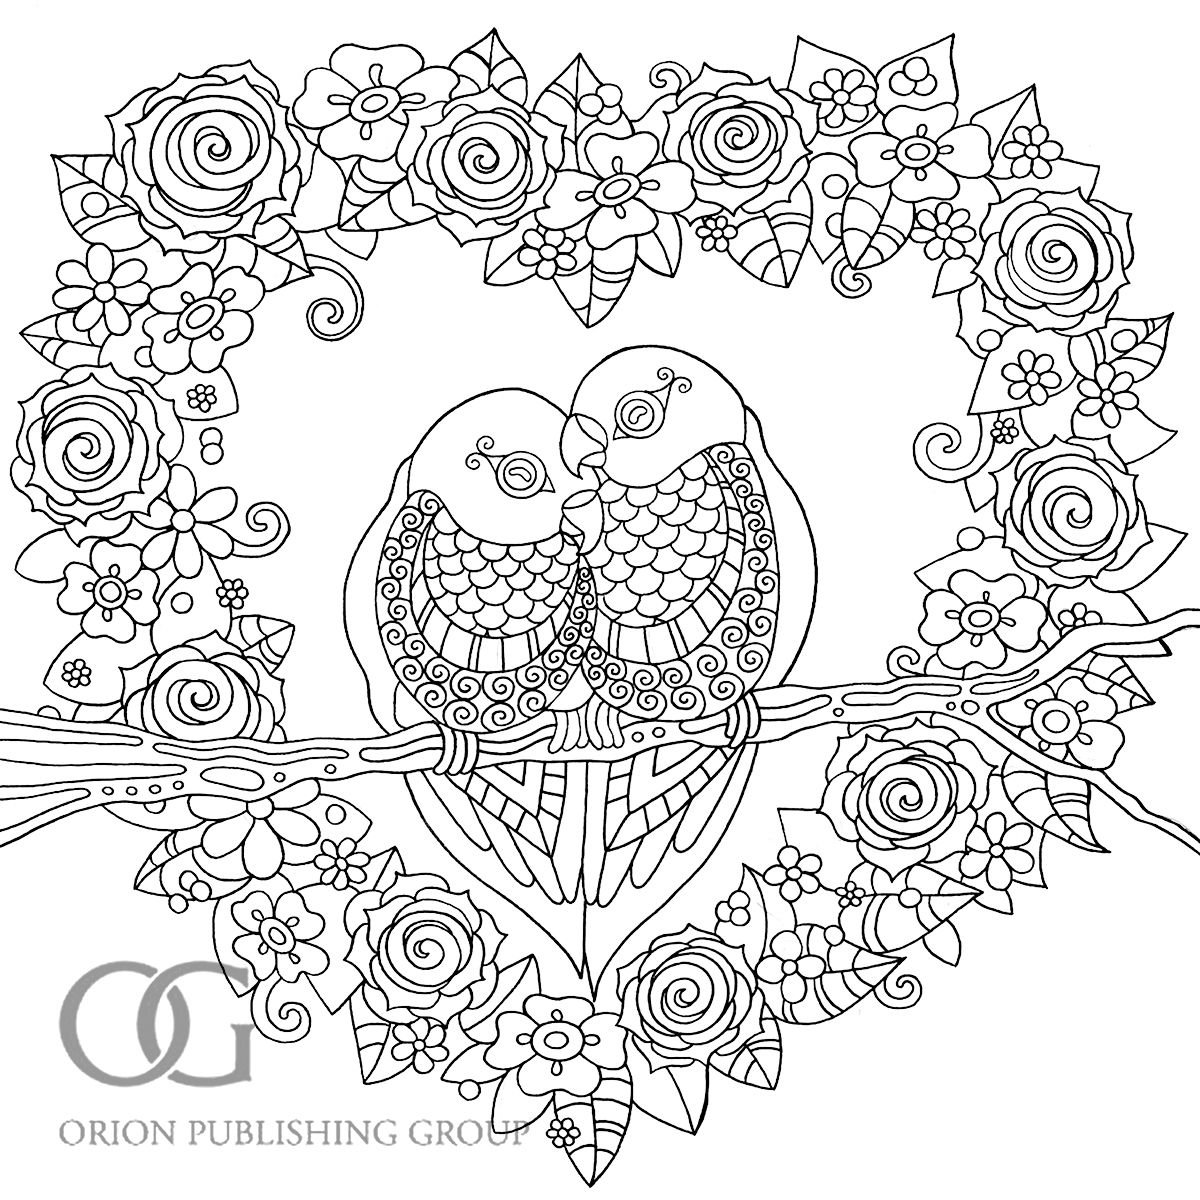 The Mindfulness Coloring Book Additional Image 4